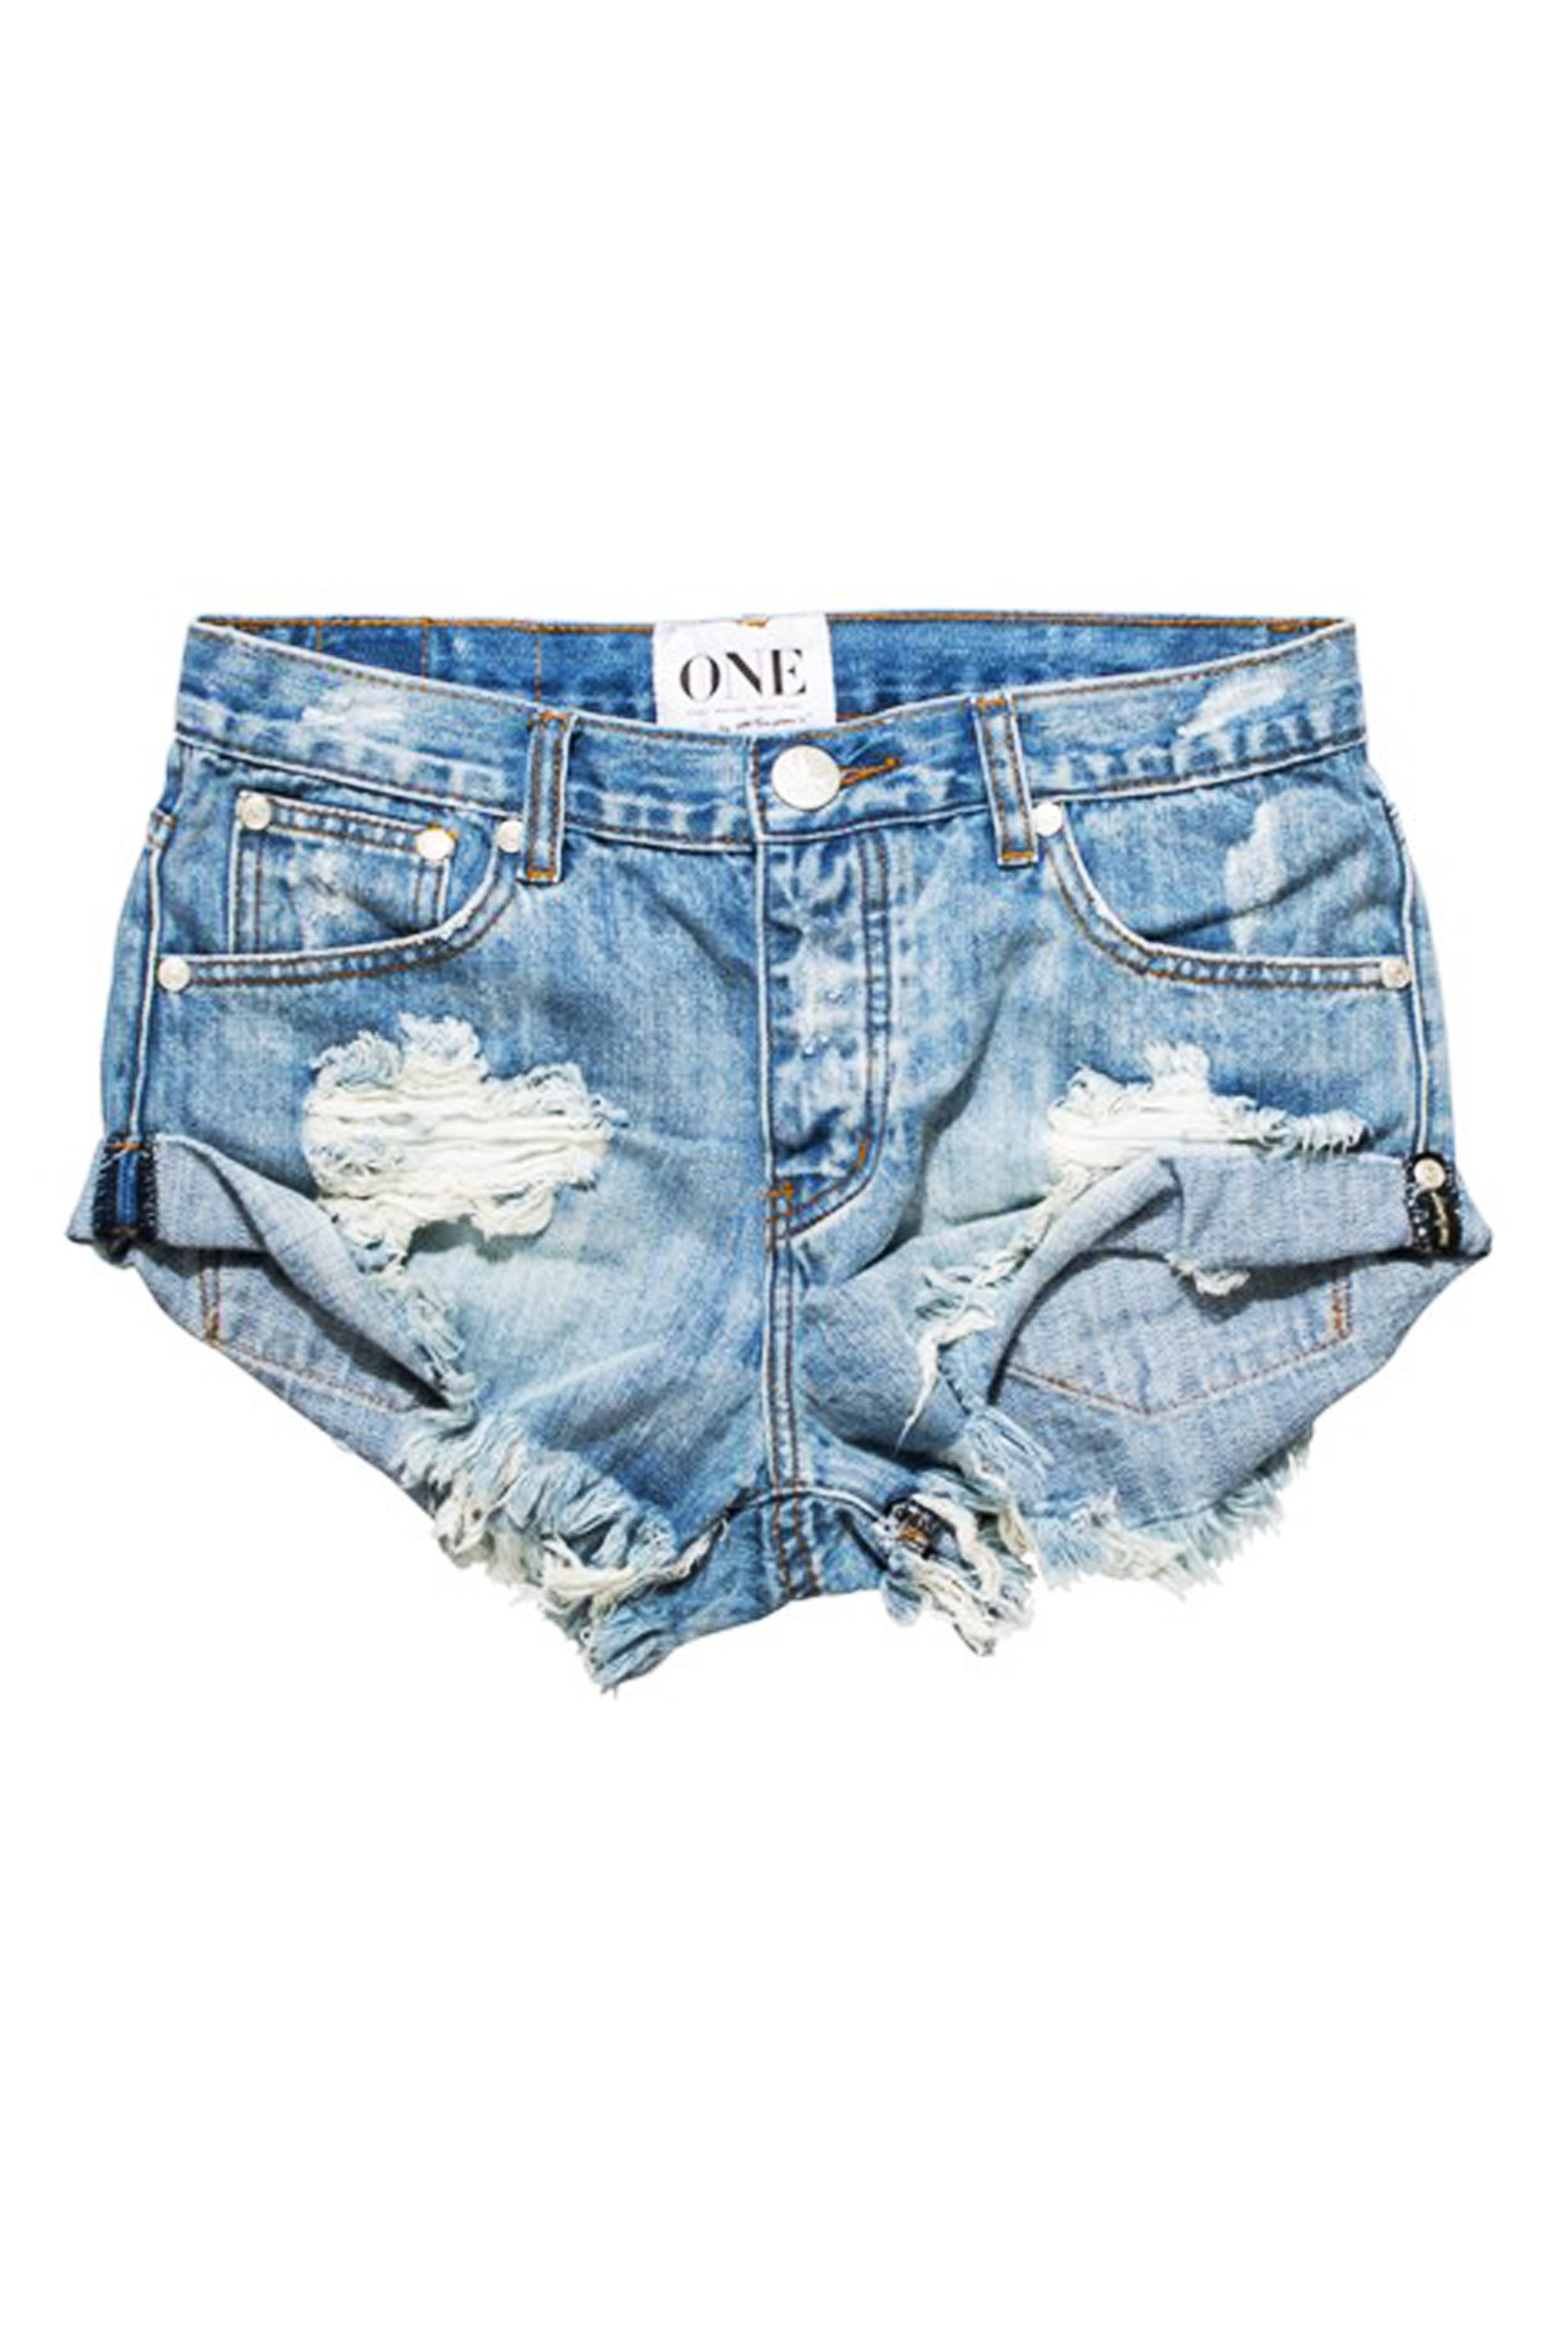 One Teaspoon Hendrix Bandit Shorts HENDRIX BANDITS Light Denim